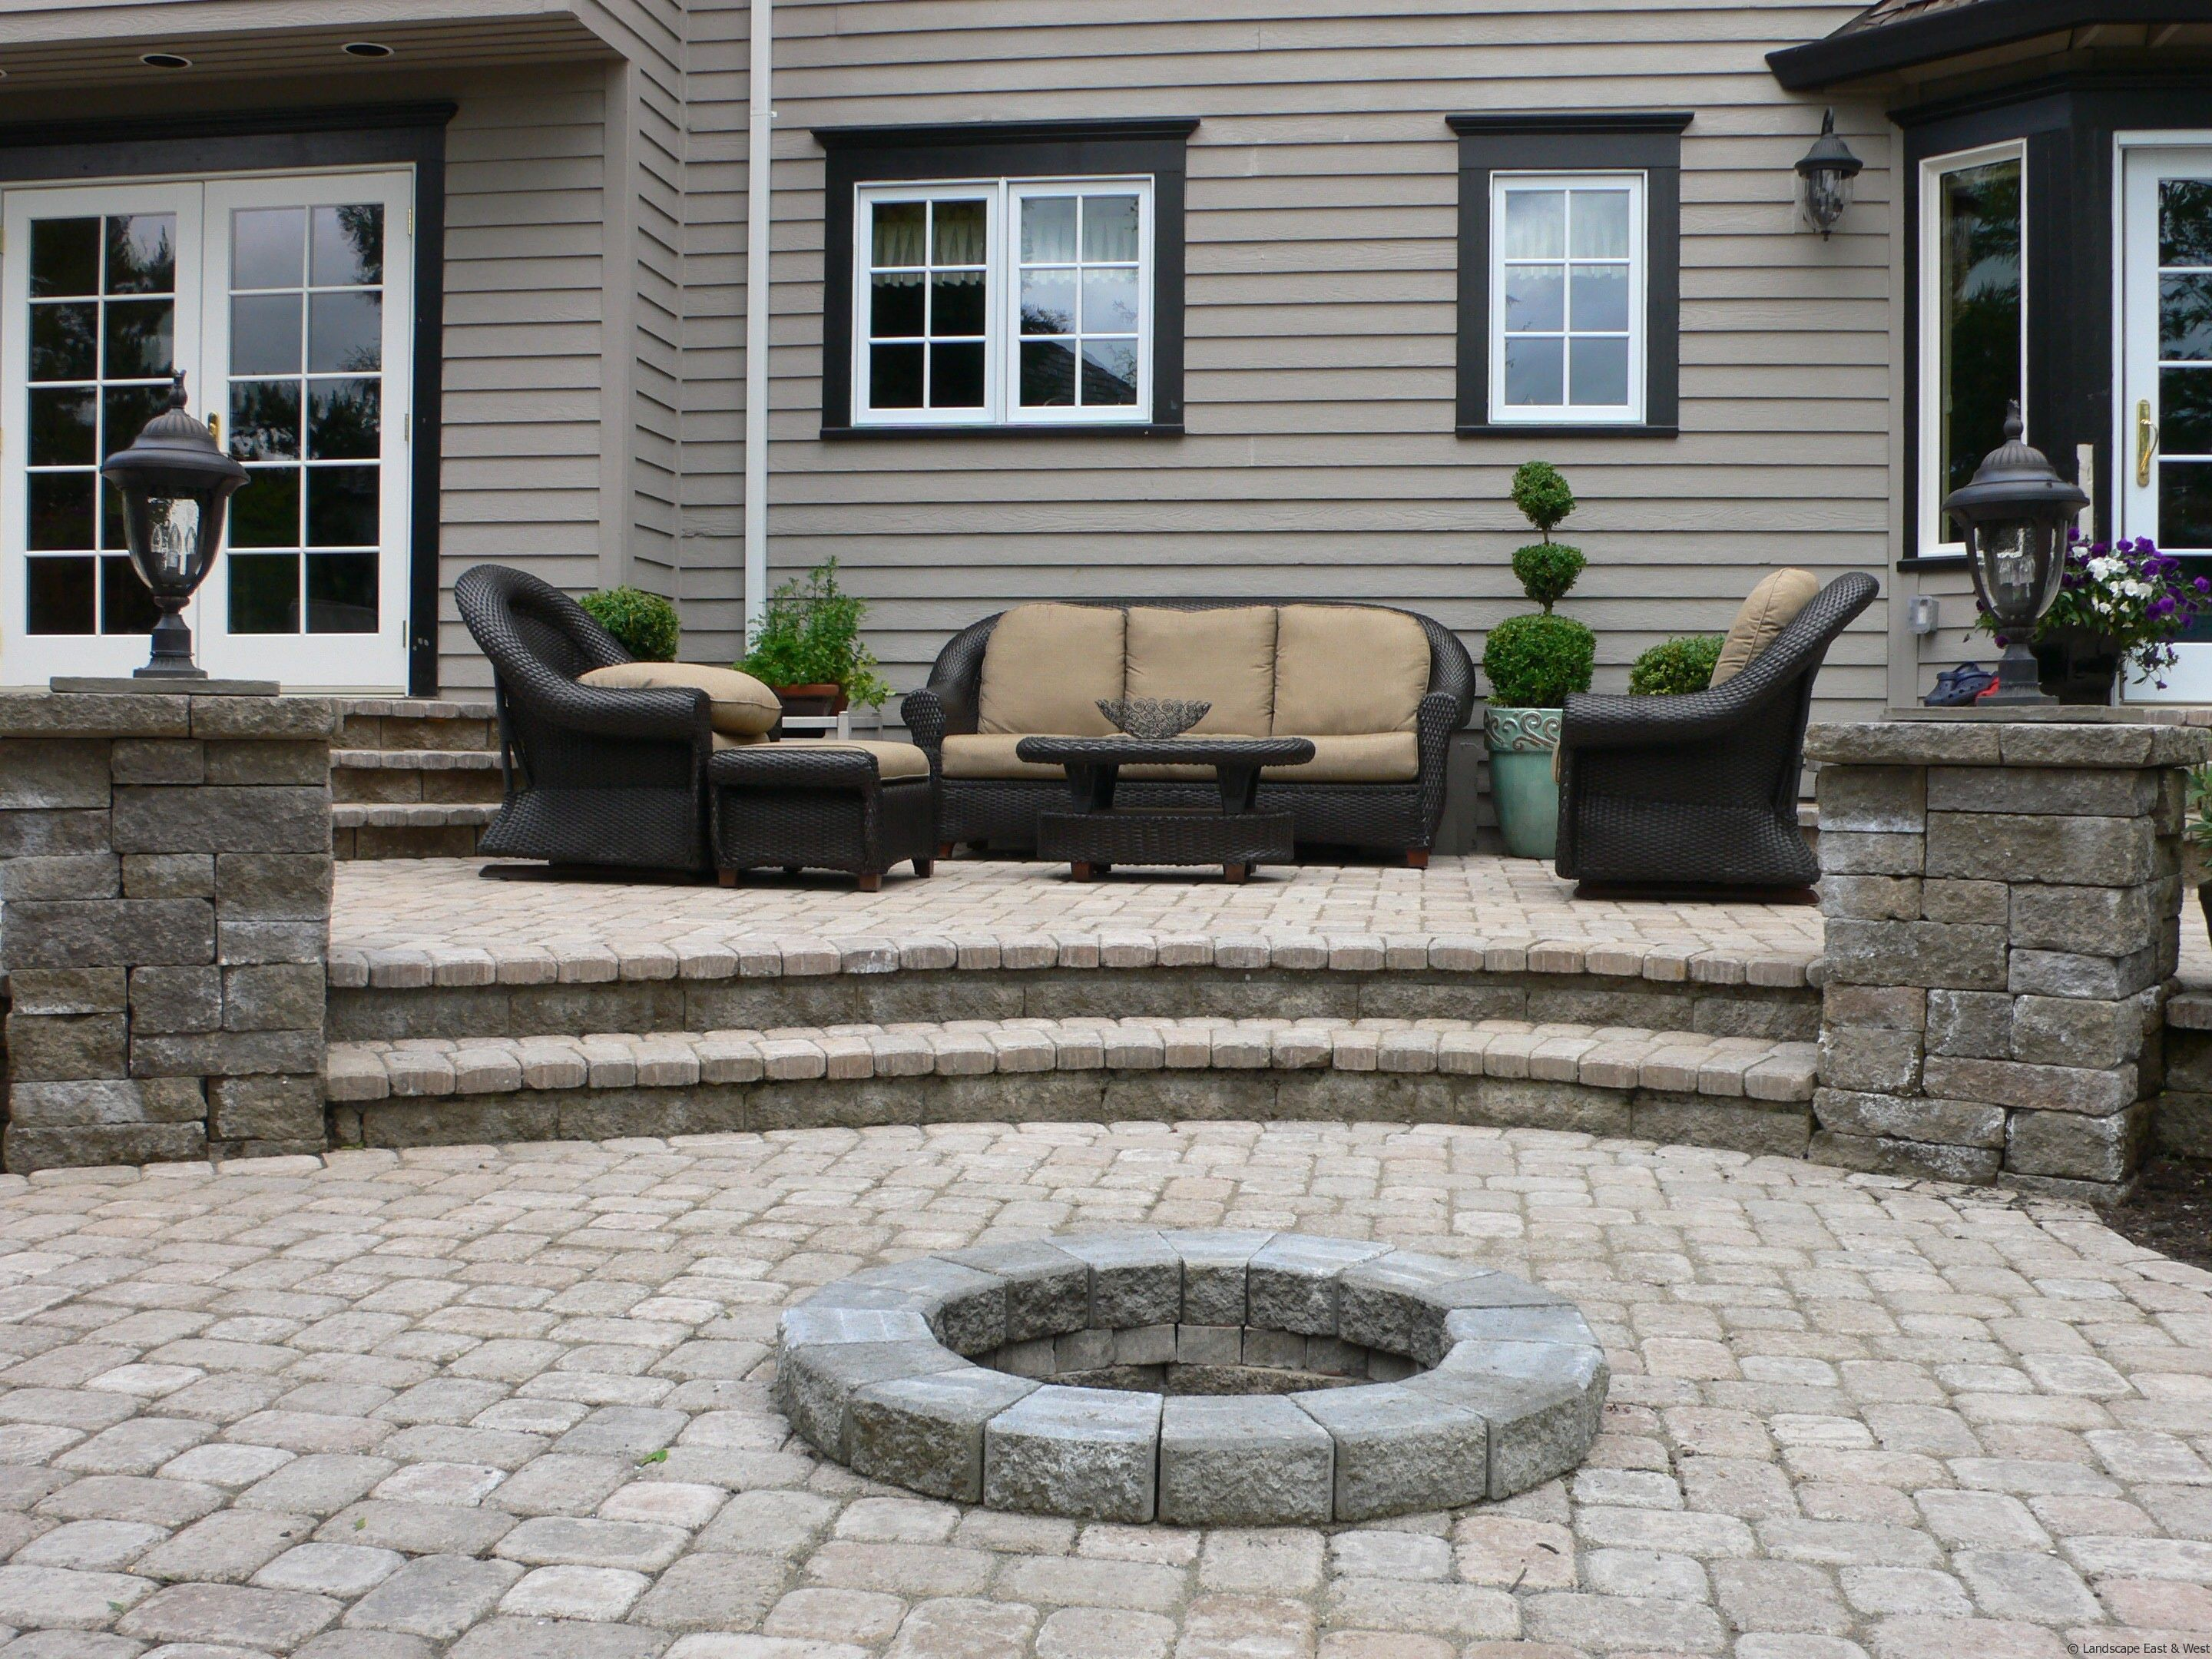 Modern Brow Floor Tile Hardscape Patios Design Backyard That Can .